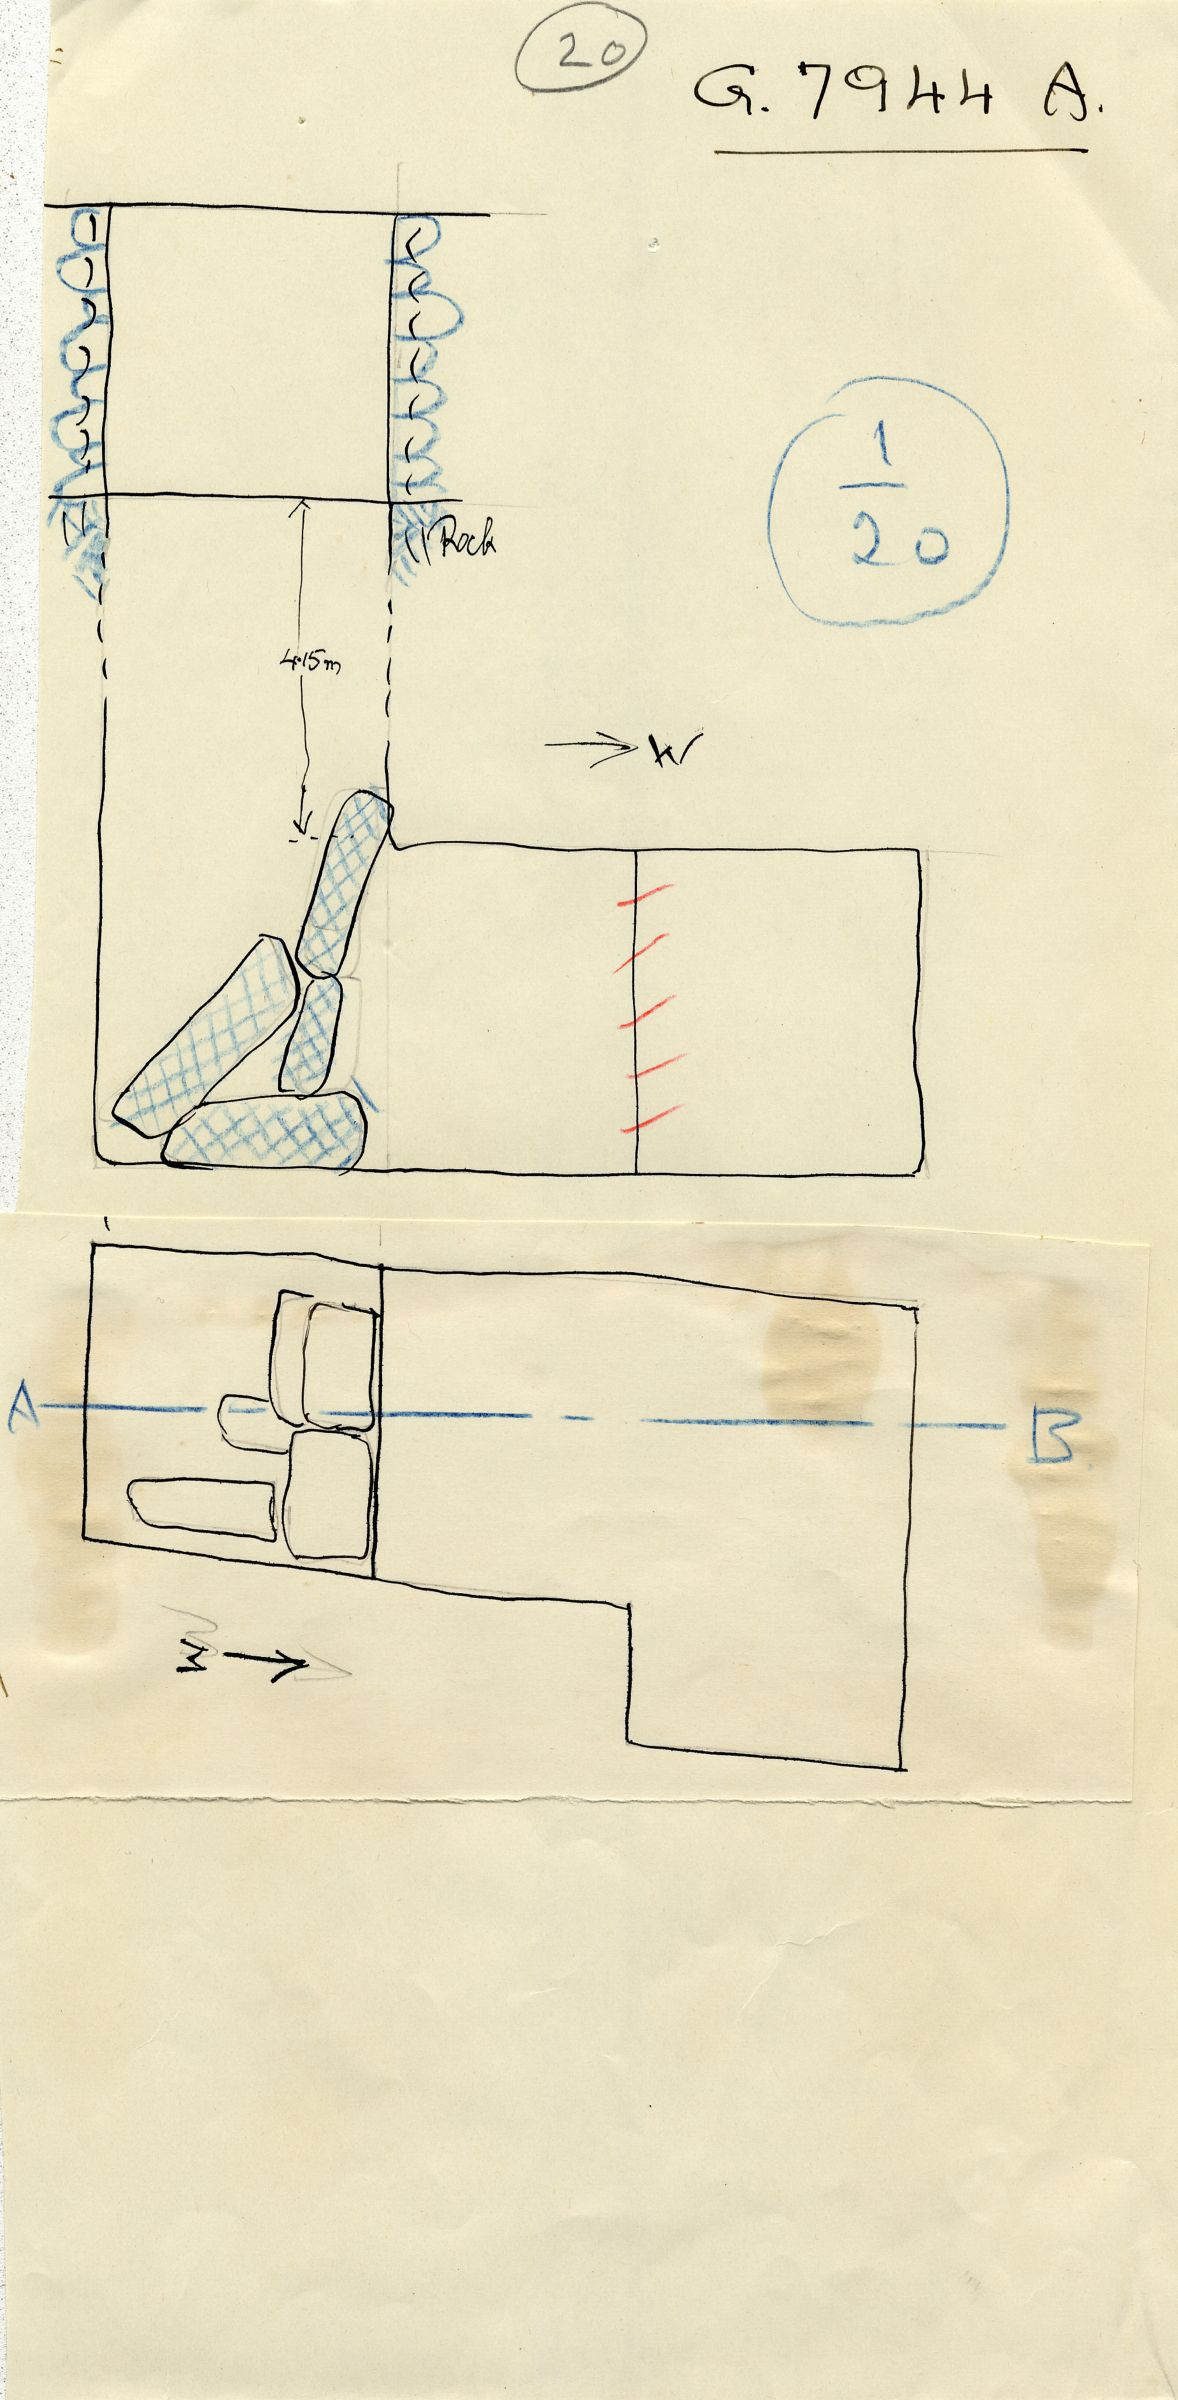 Maps and plans: G 7944, Shaft A